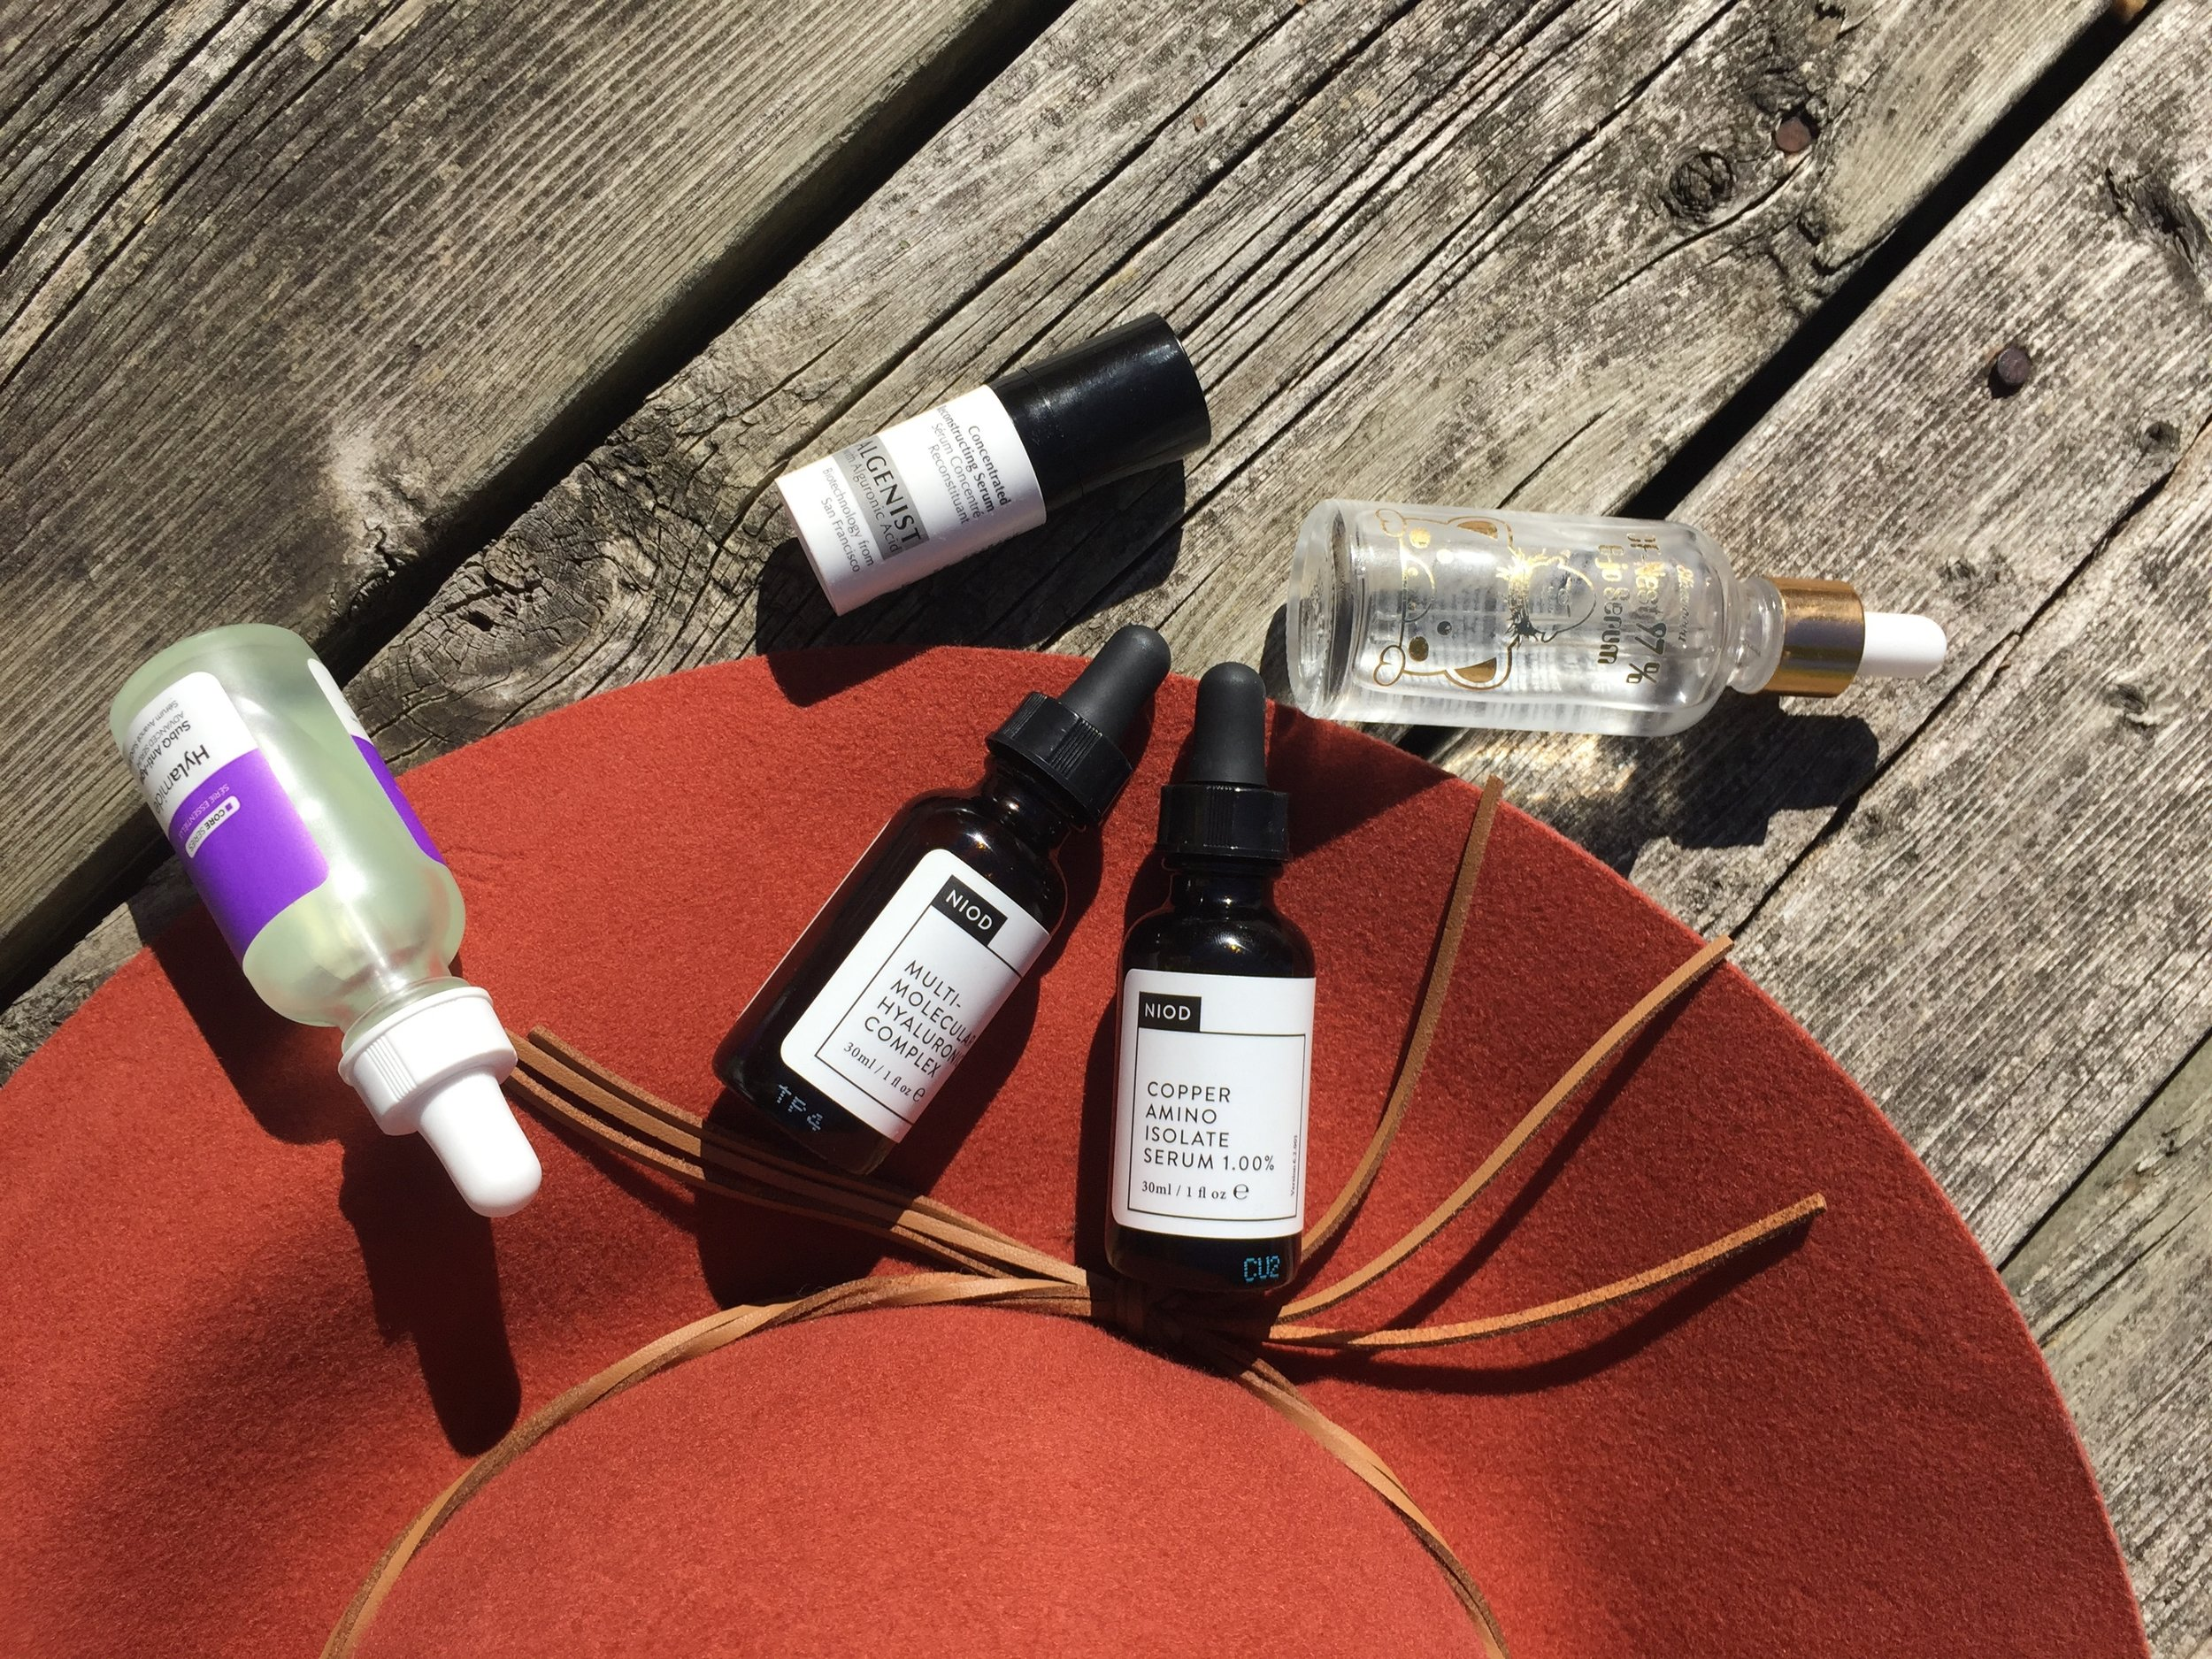 NIOD, Hylamide, Eliza Vecca and Algenist Serums